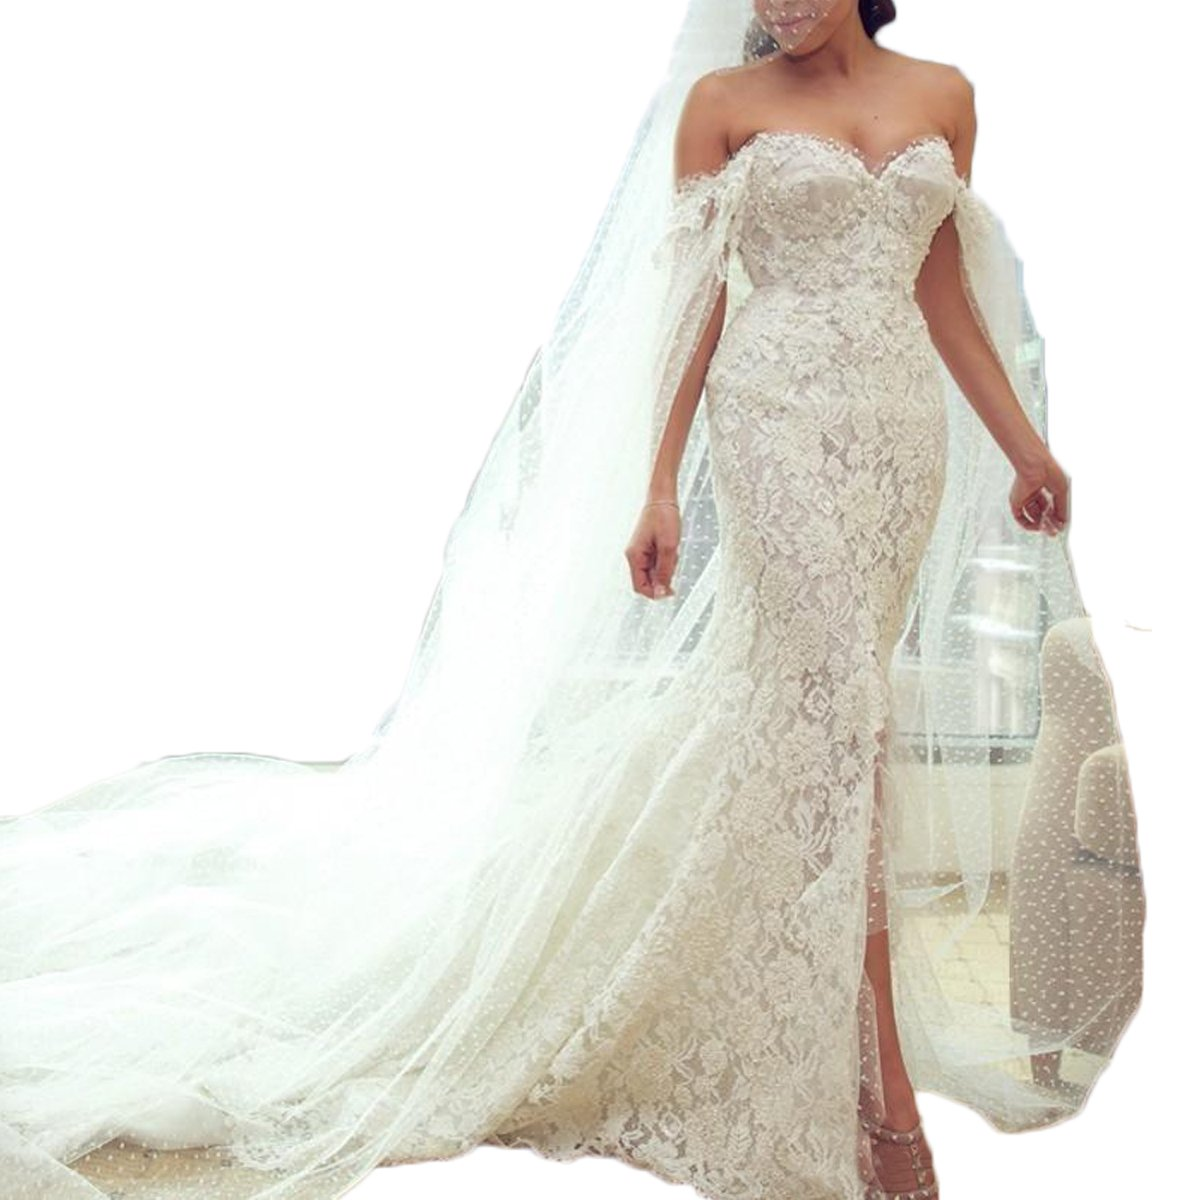 Thrsaeyi Womens Sweetheart Lace Mermaid Wedding Dresses Pearls With